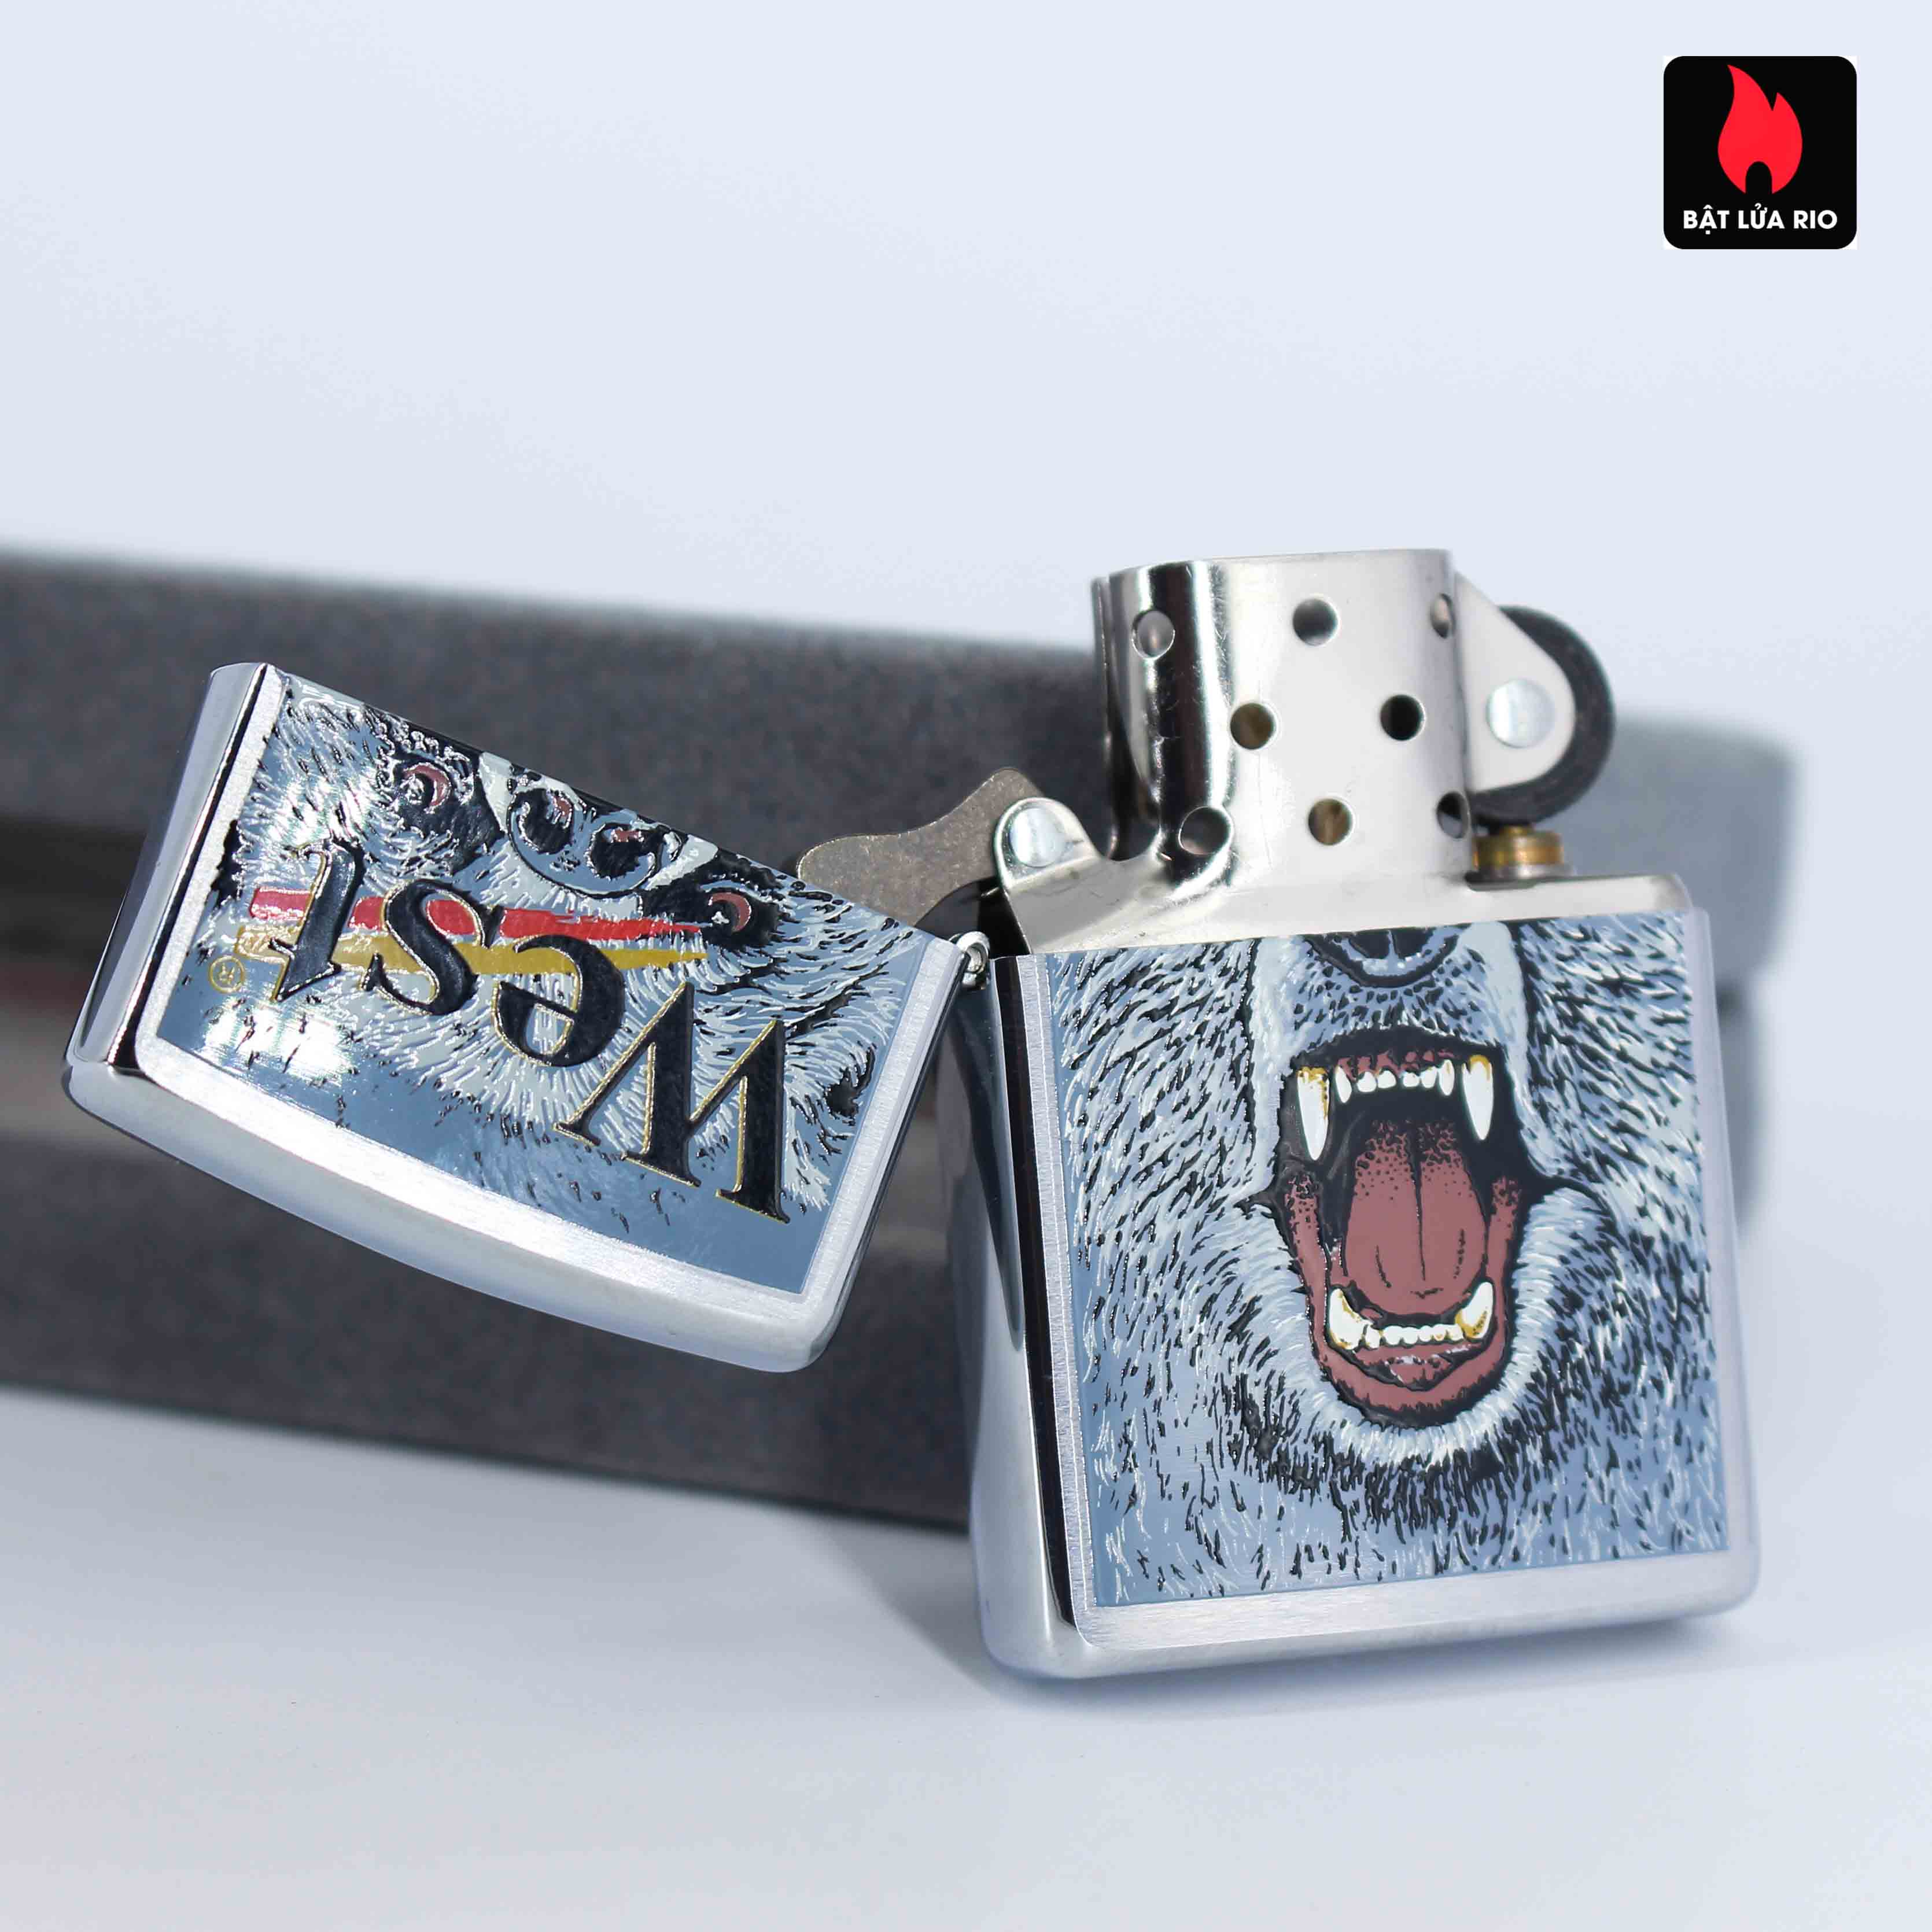 Zippo 2001 - Wild Lighters Edition - Limited Edition /1000 19